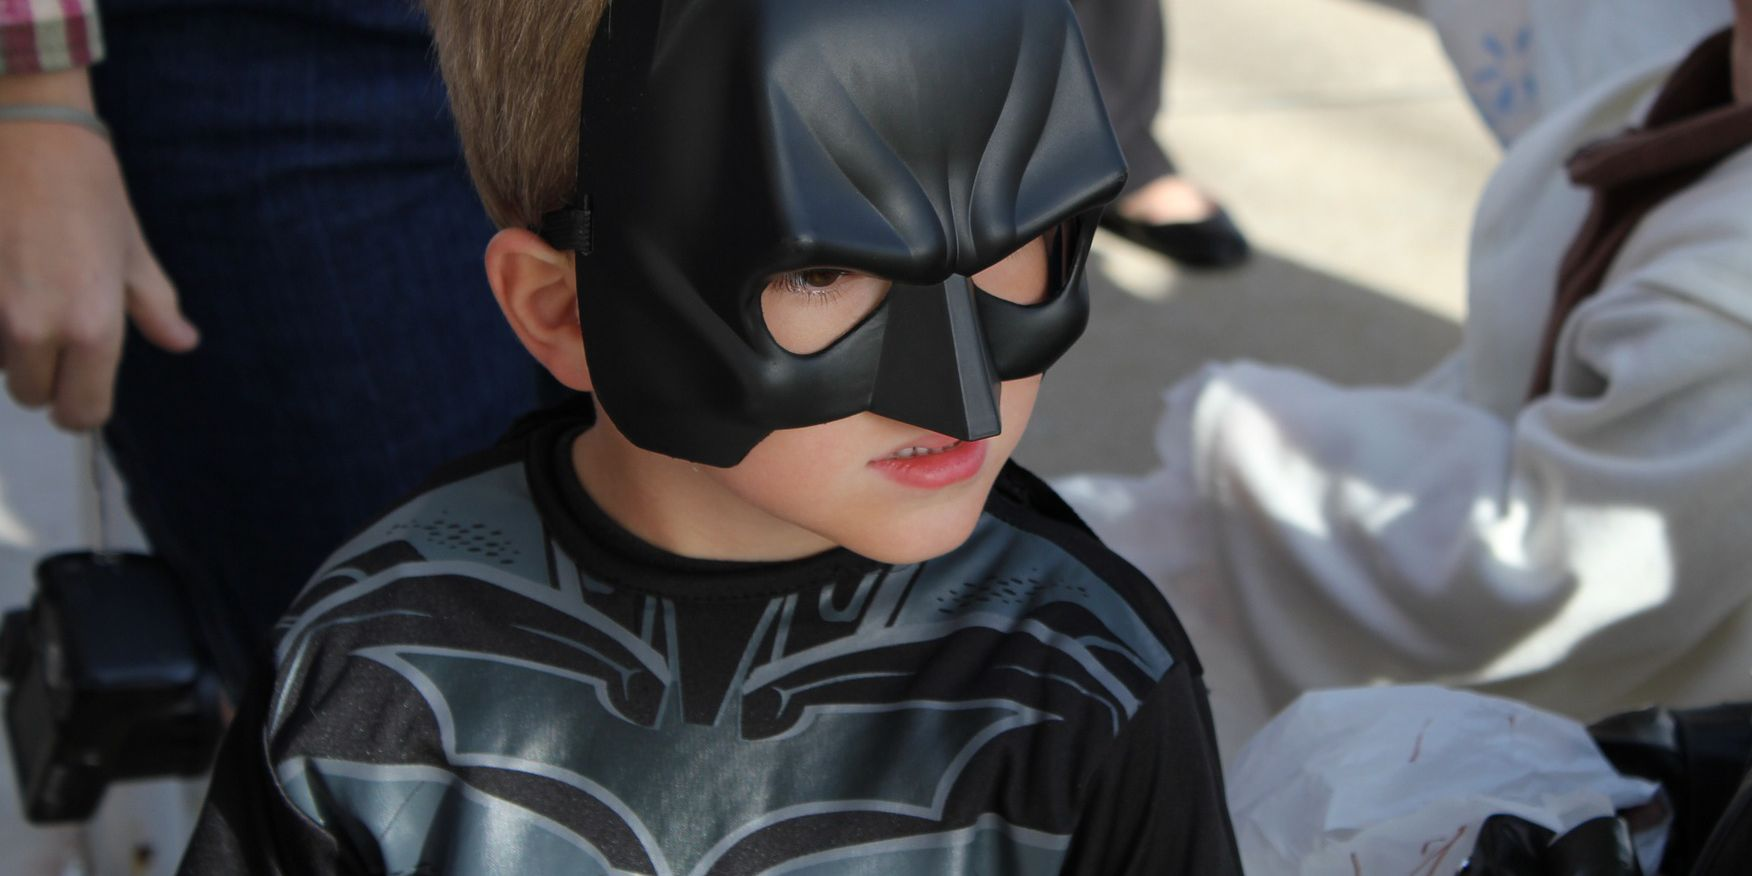 RVA Parenting: Making costumes and making the most of them before Halloween